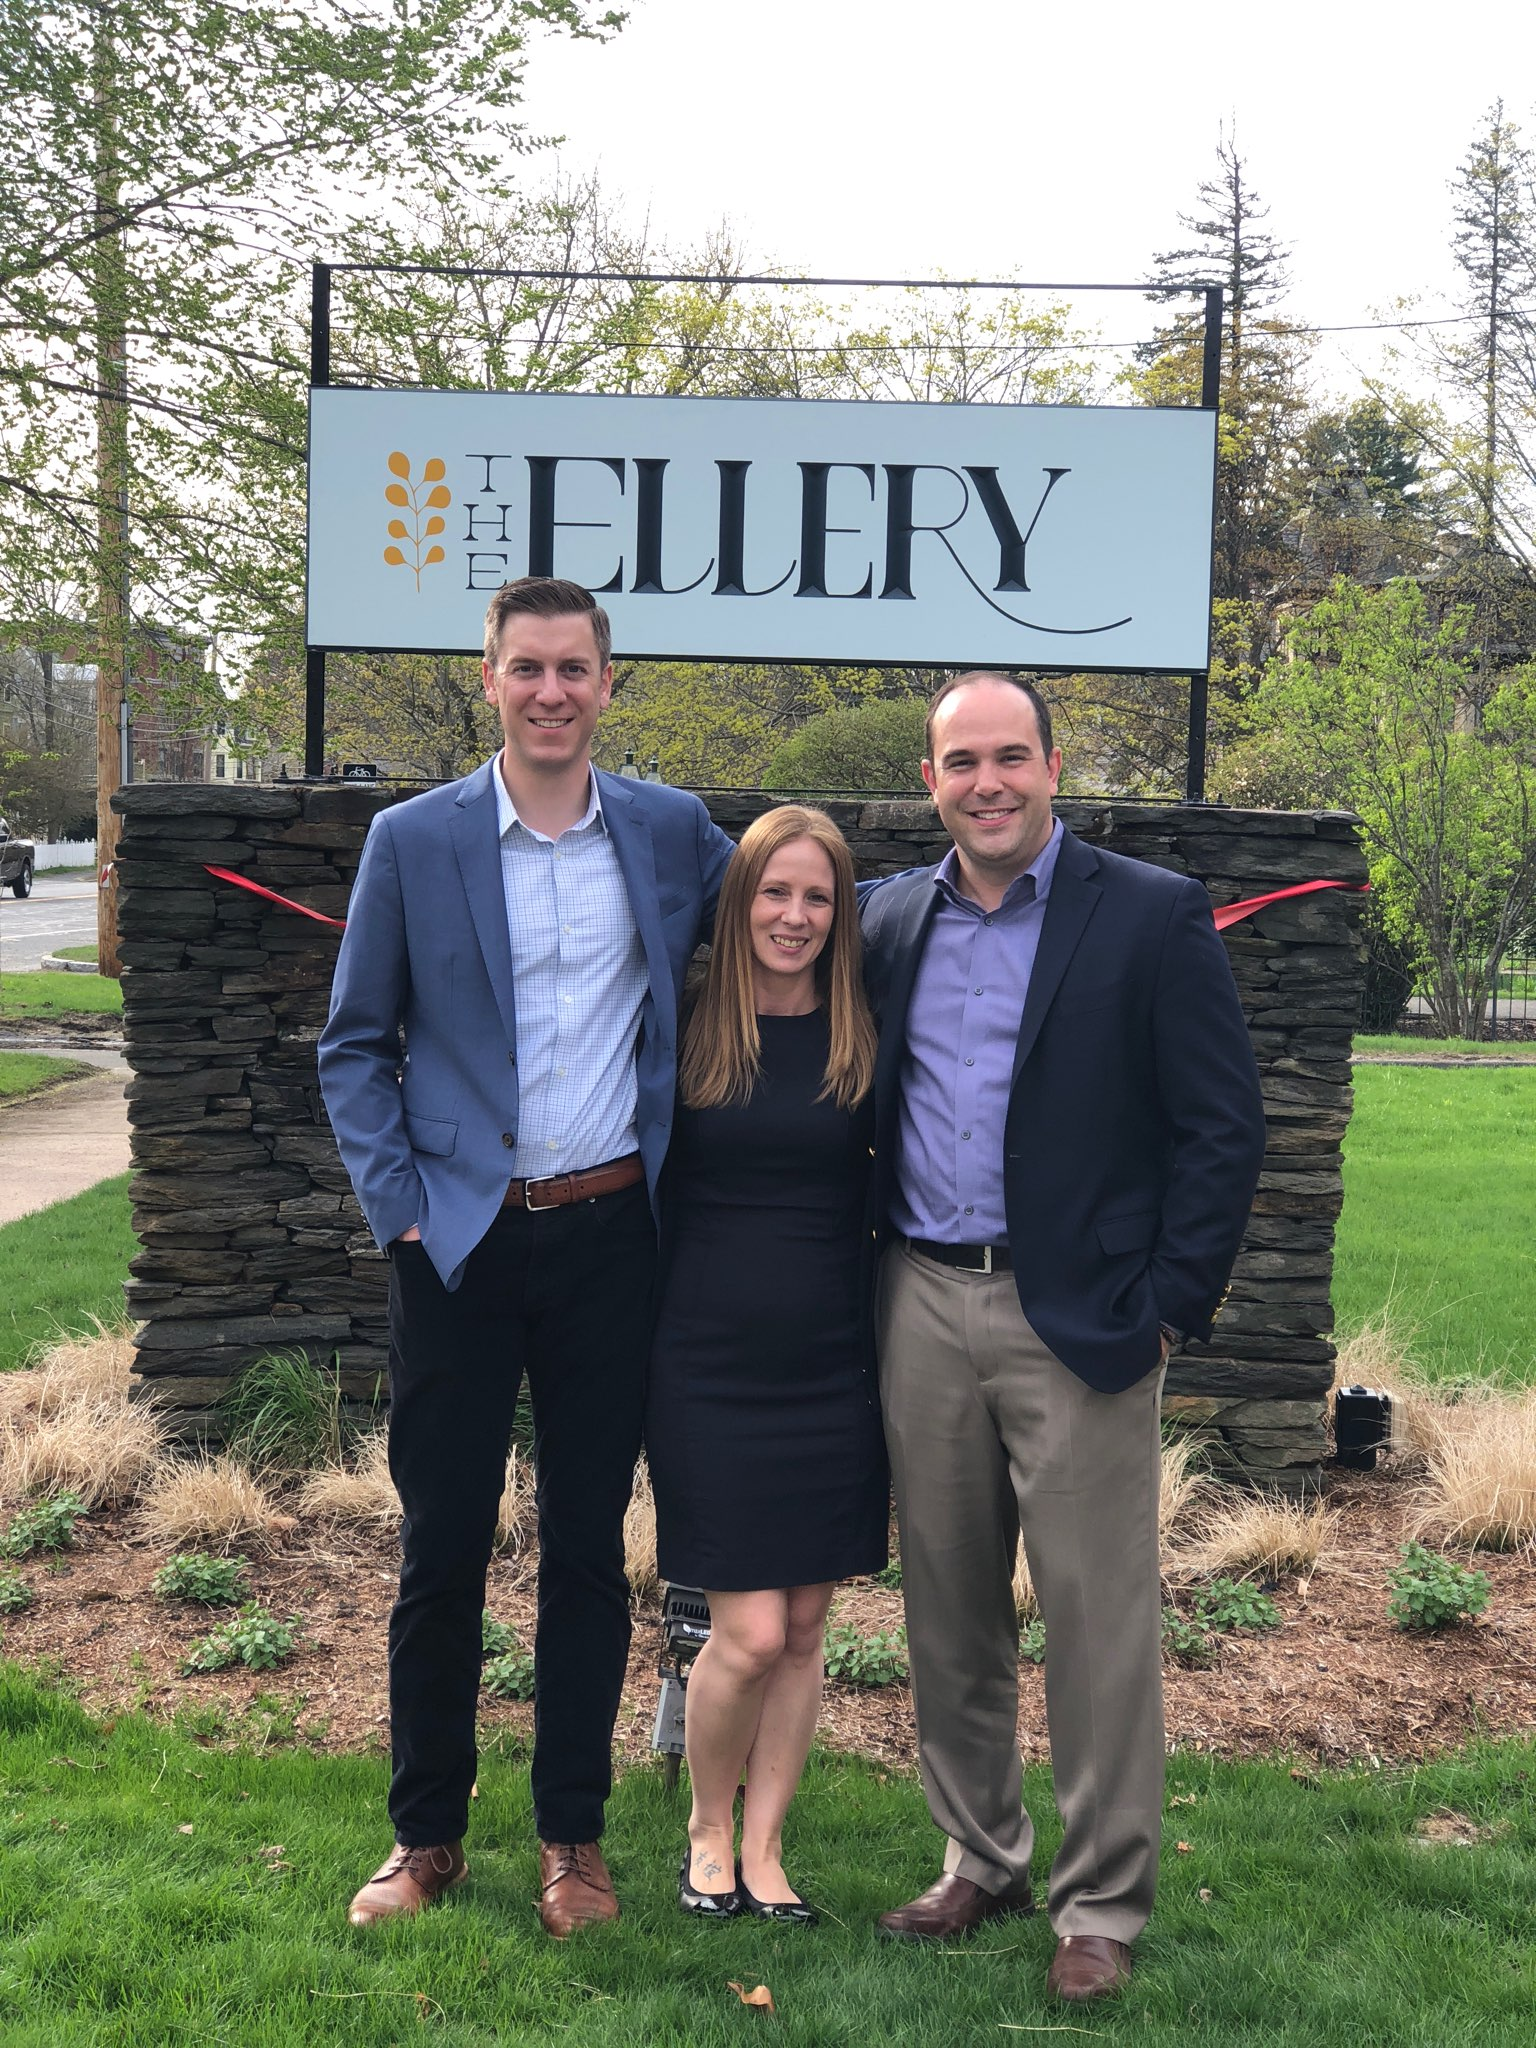 Staff members in front of the ellery hotel sign